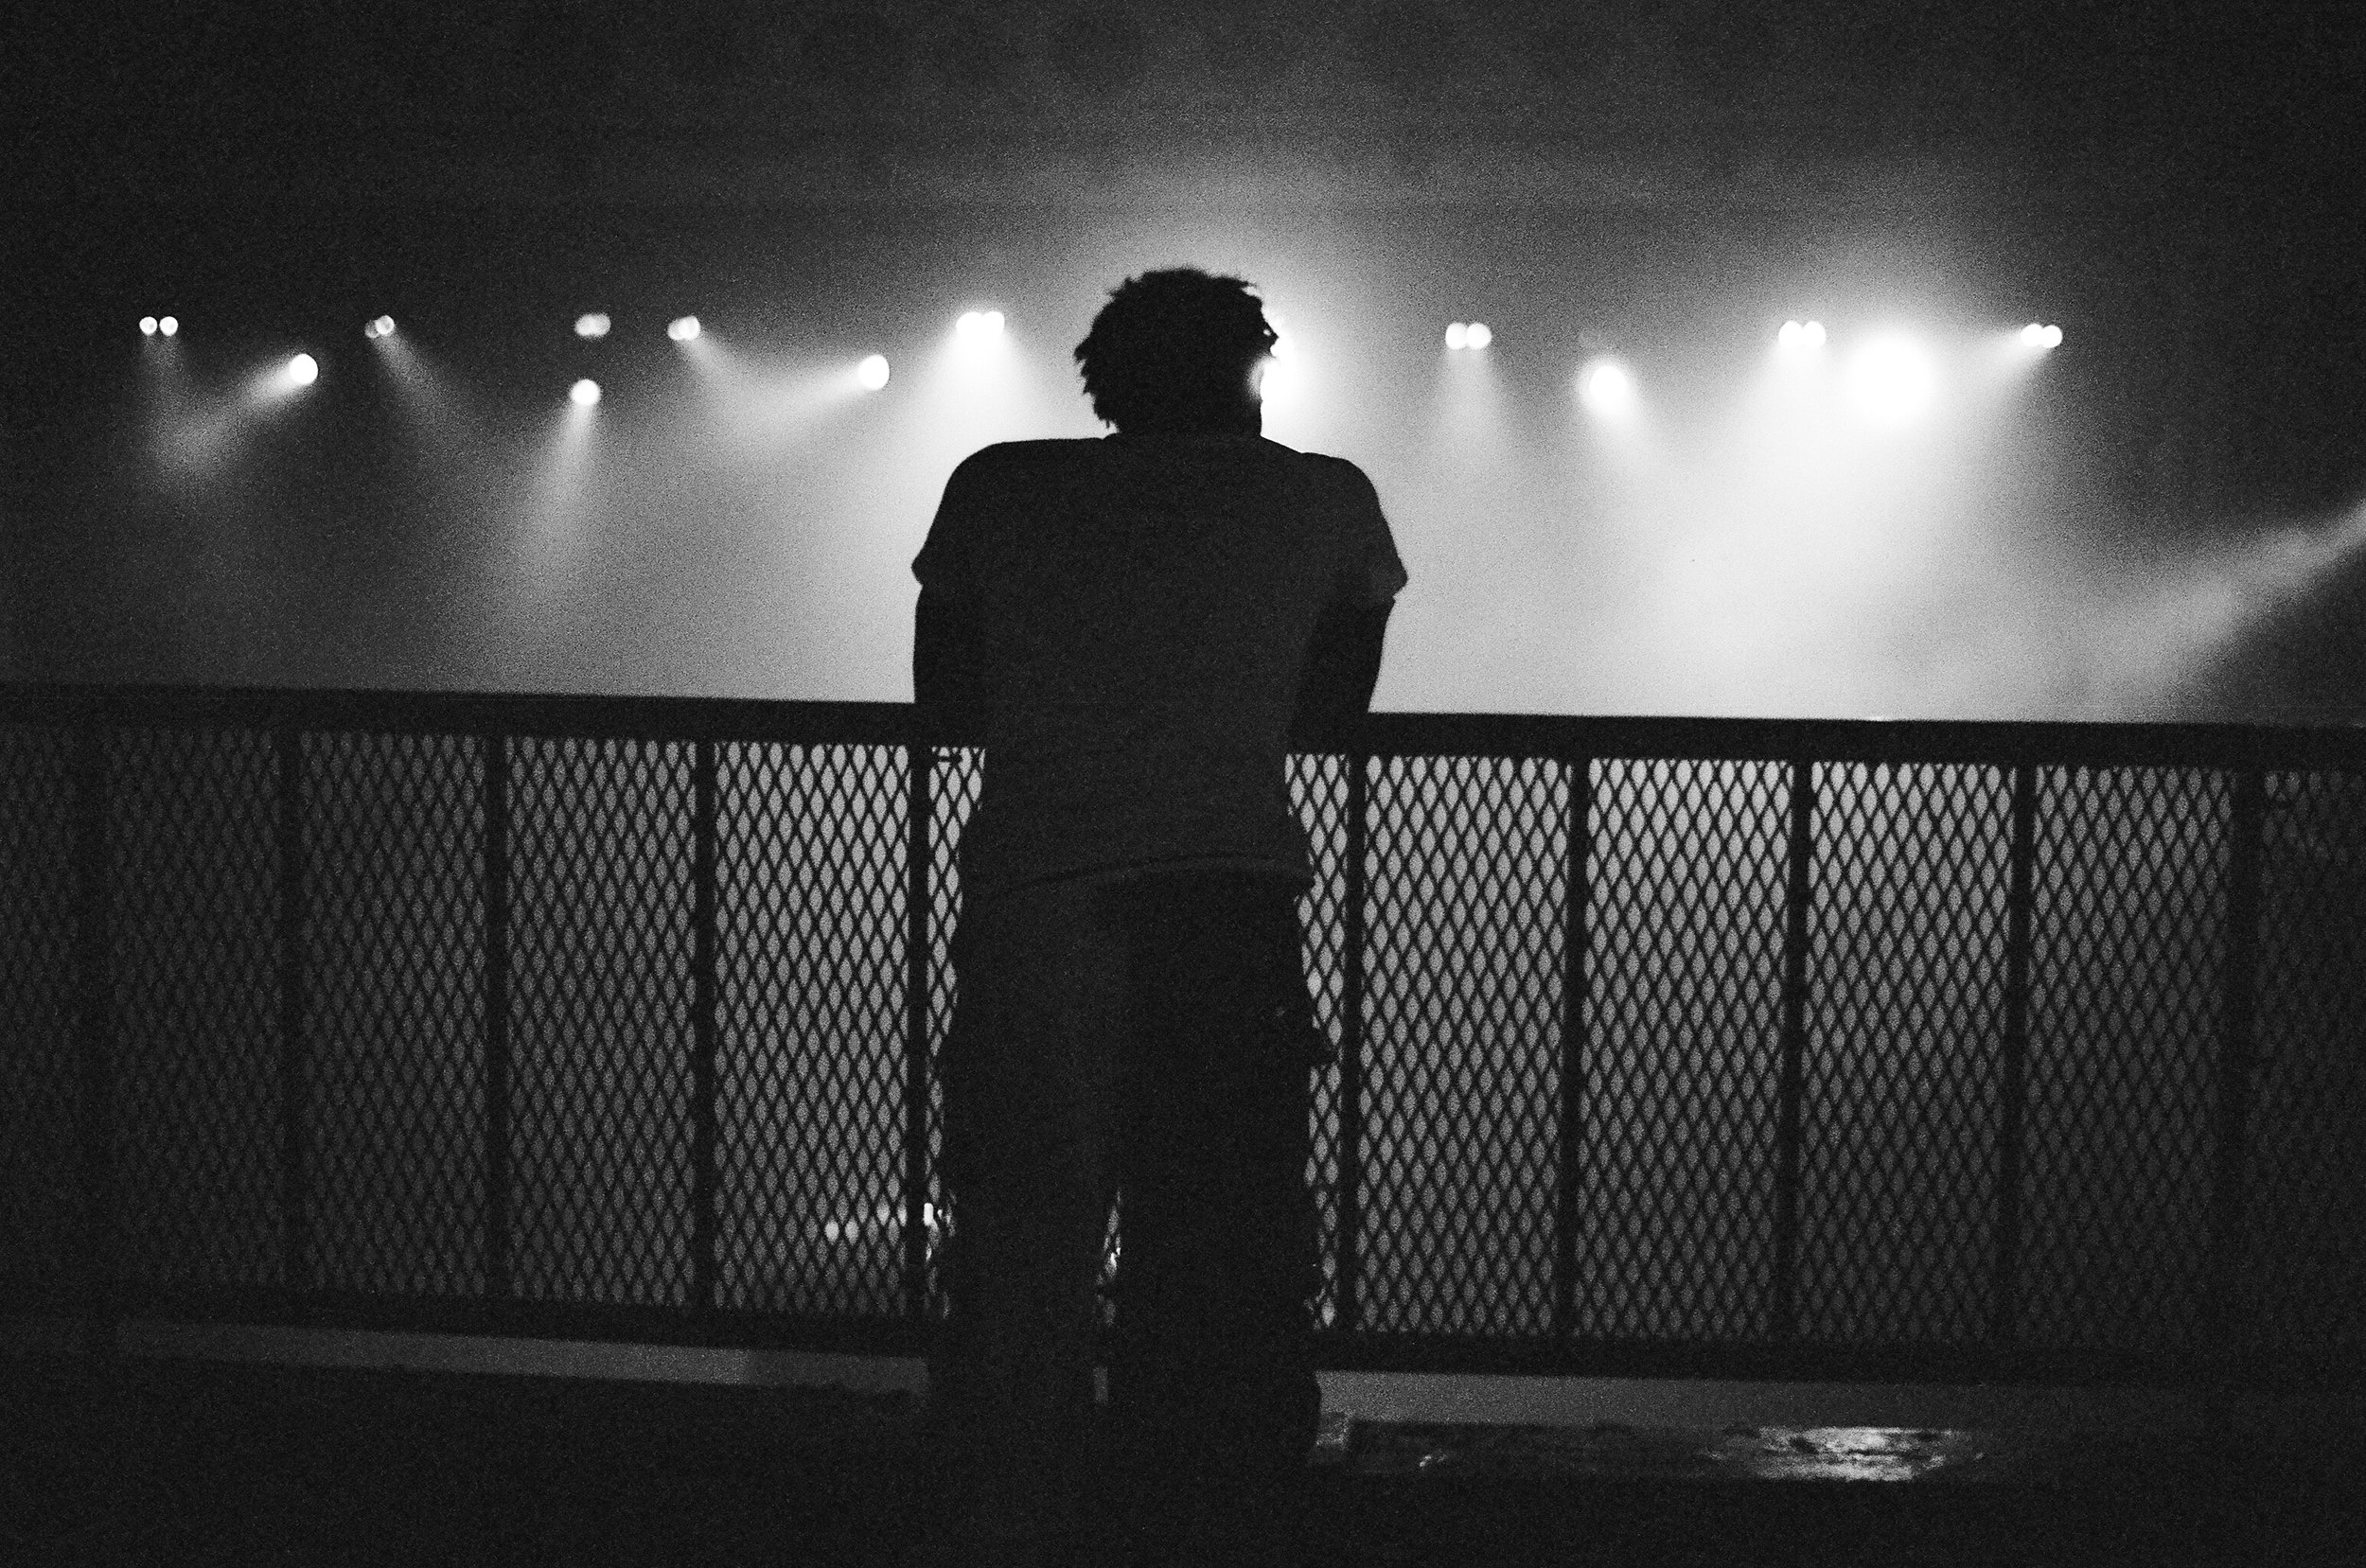 35mm photo delta 3200 in the night at nocturna metro chicago by zshare photovisions